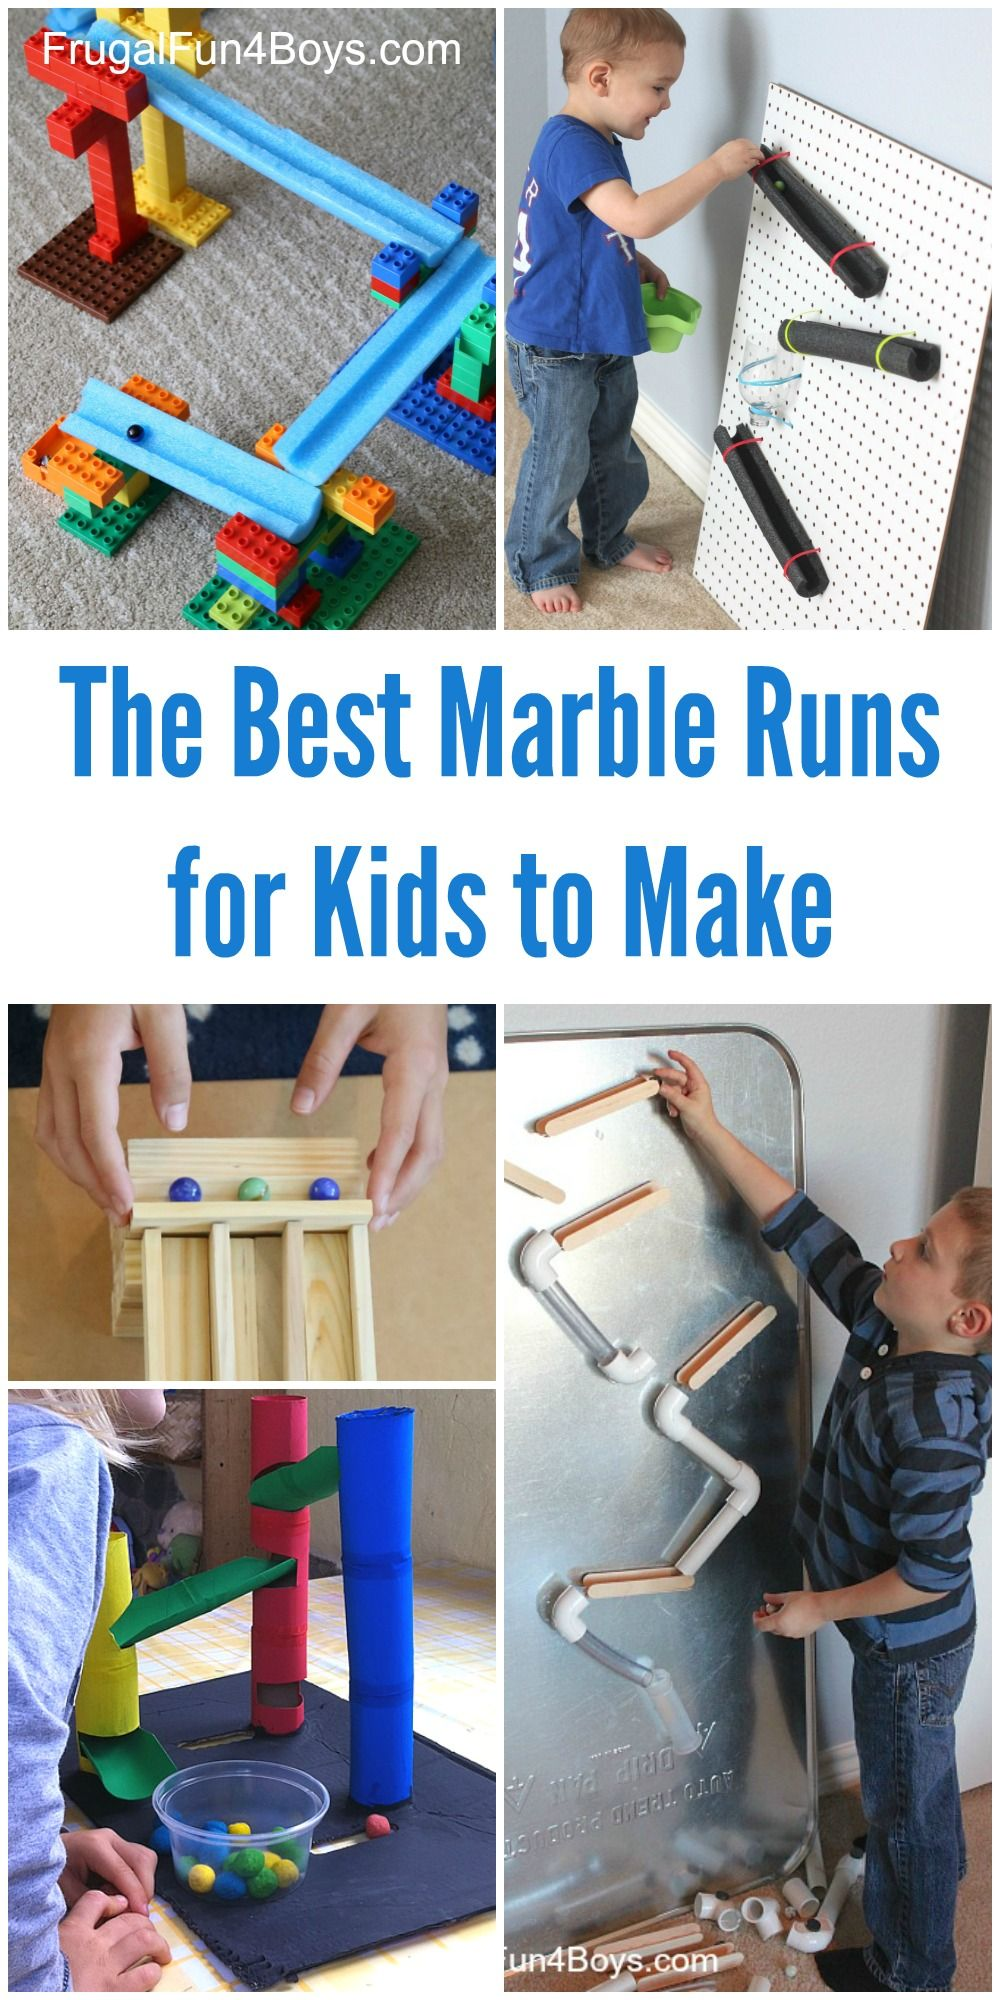 Fun STEM Challenges for Kids The Best Marble Runs to Build